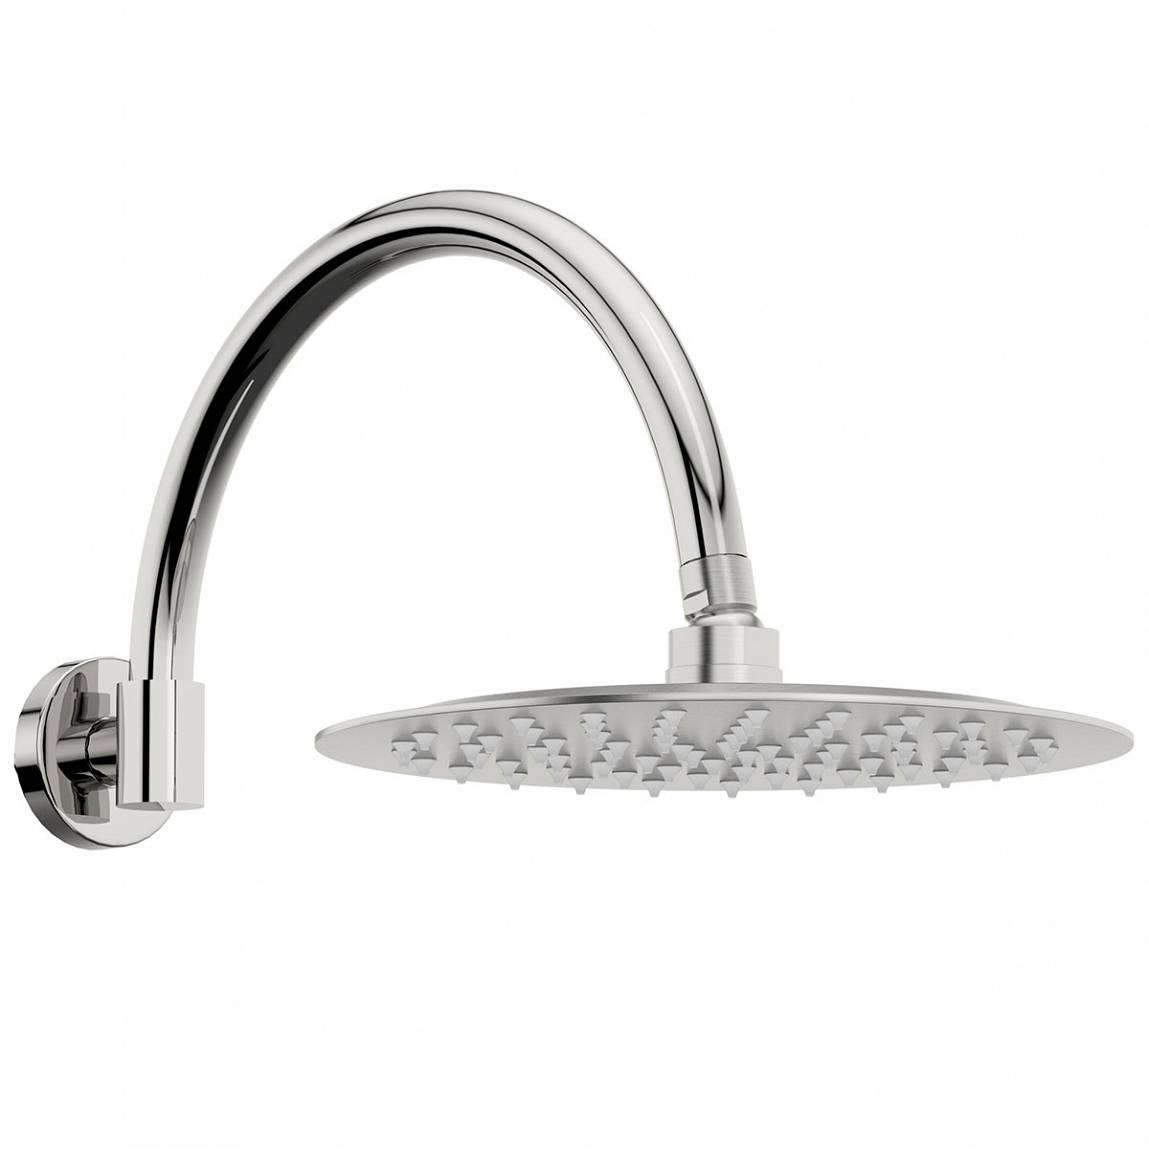 Image of Cirrus 250mm Shower Head & Traditional Wall Arm